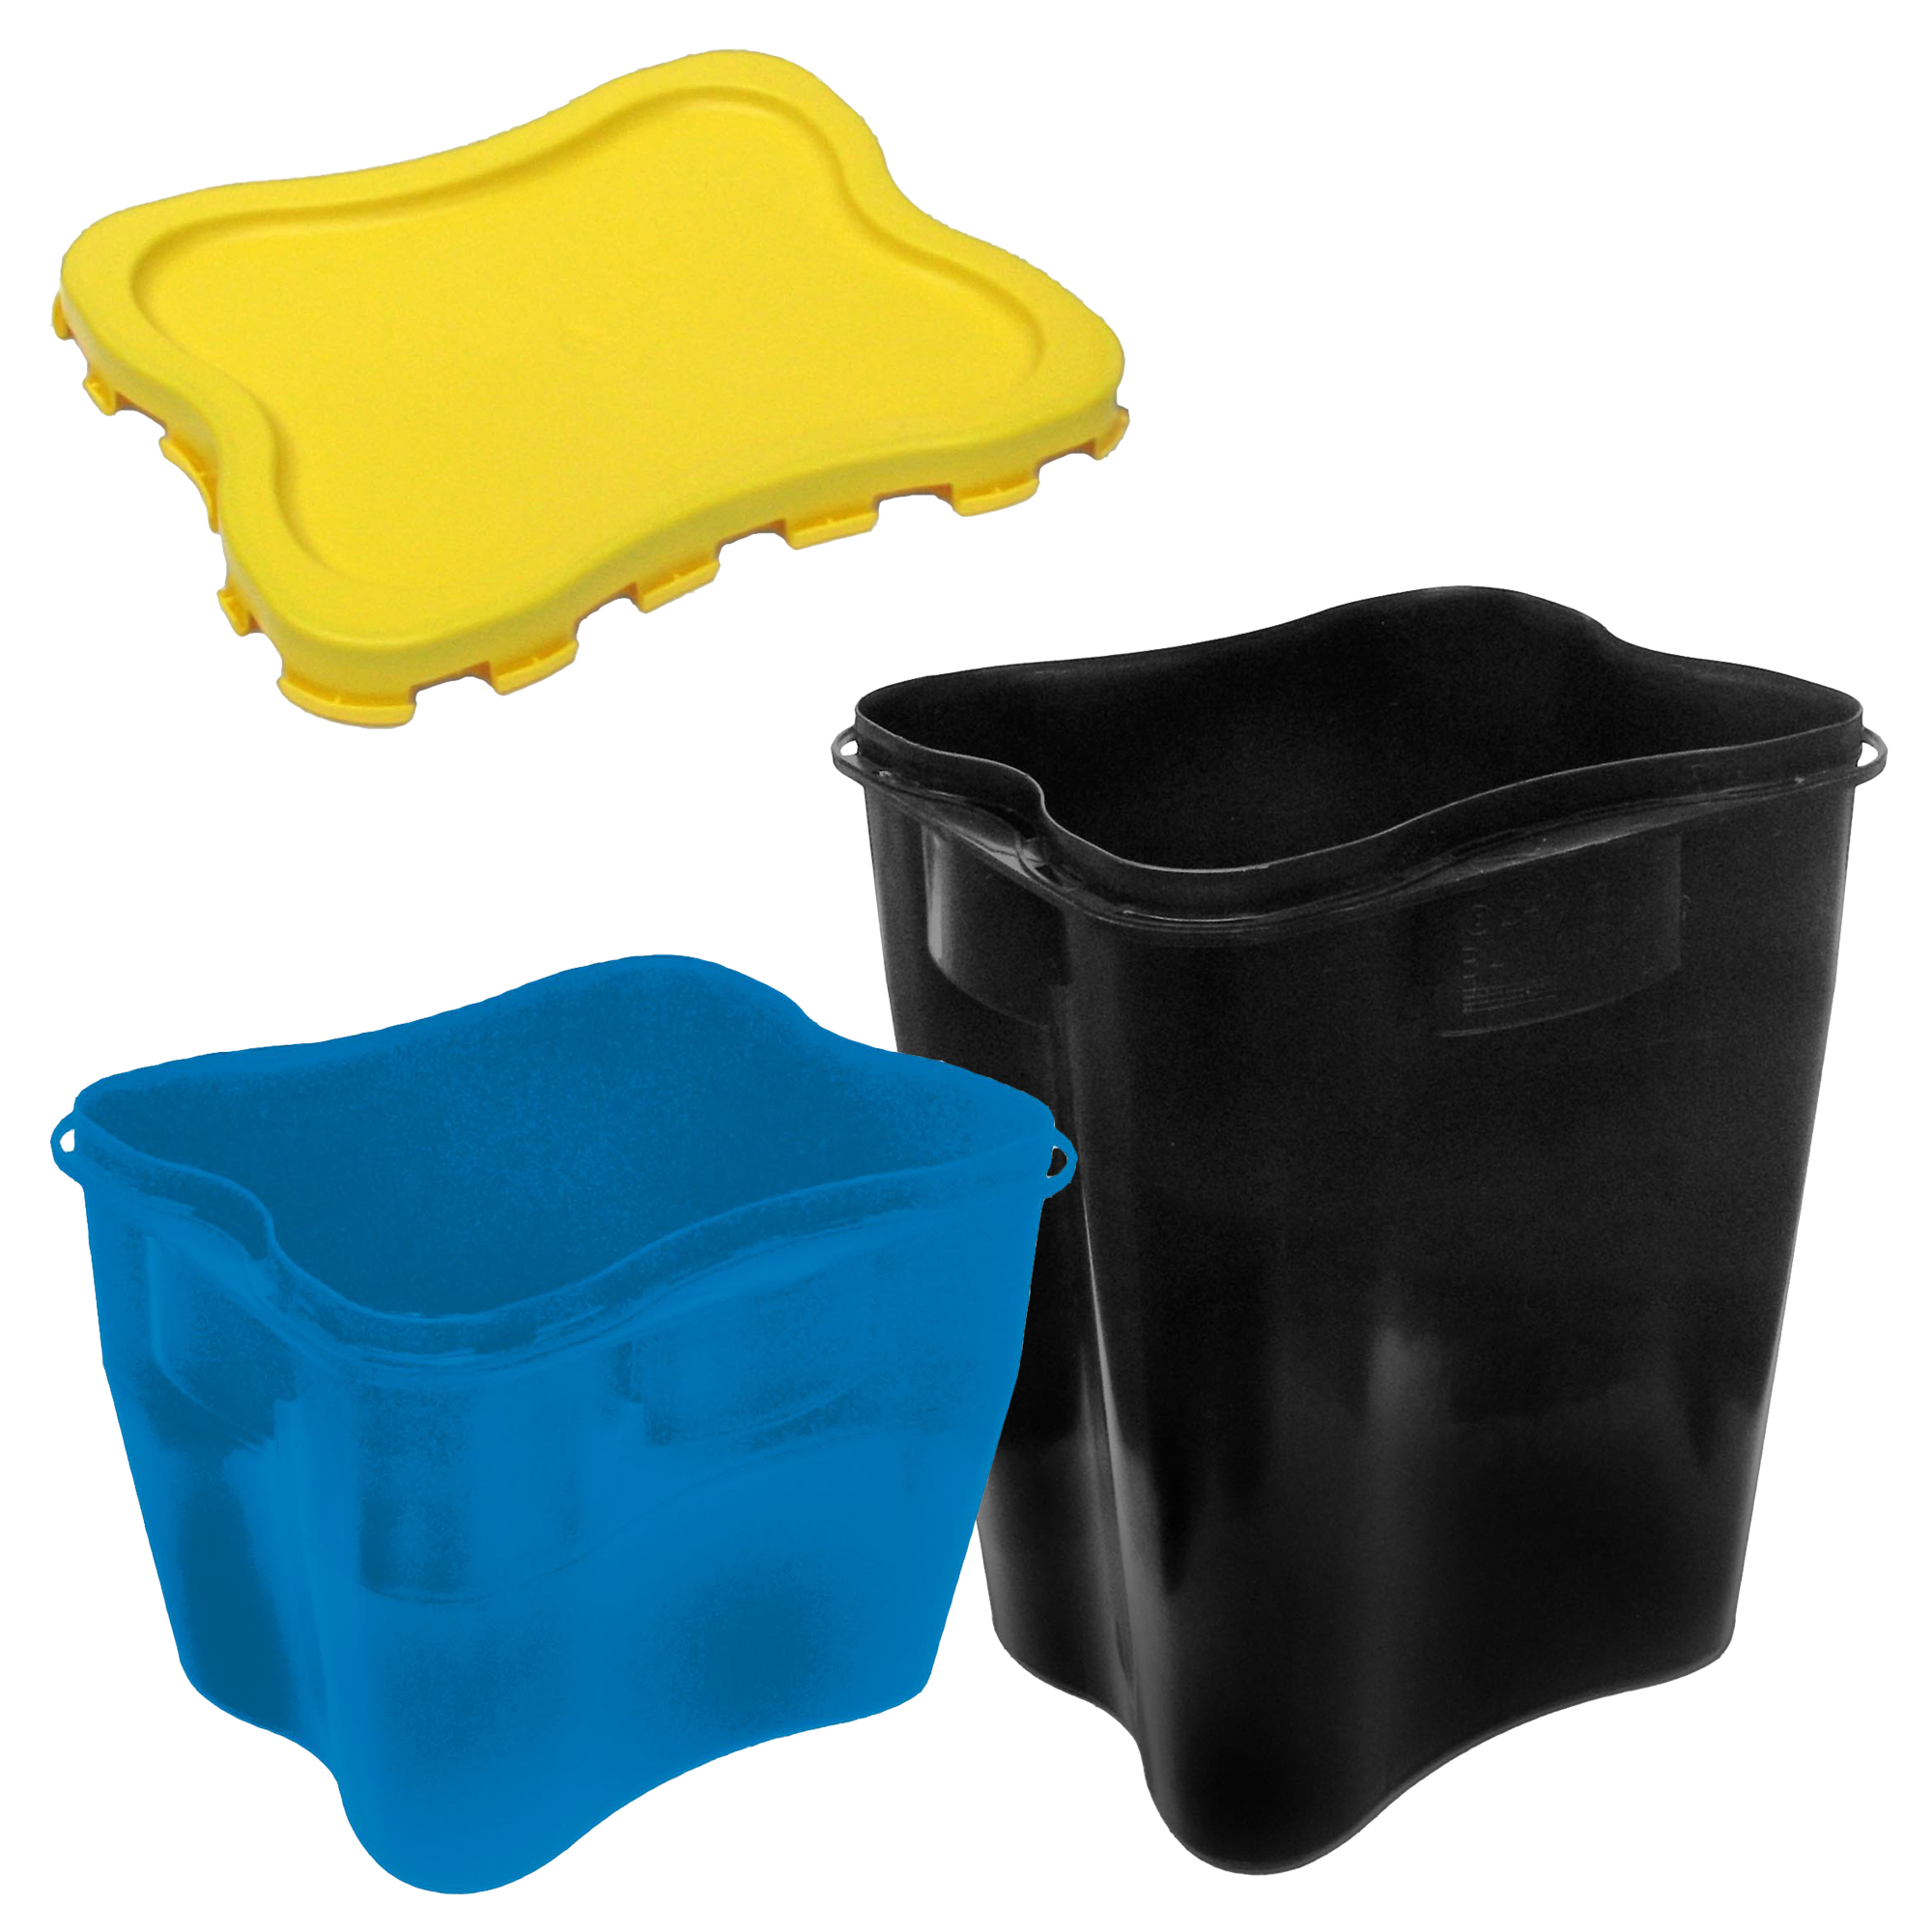 abox® disposal container Image